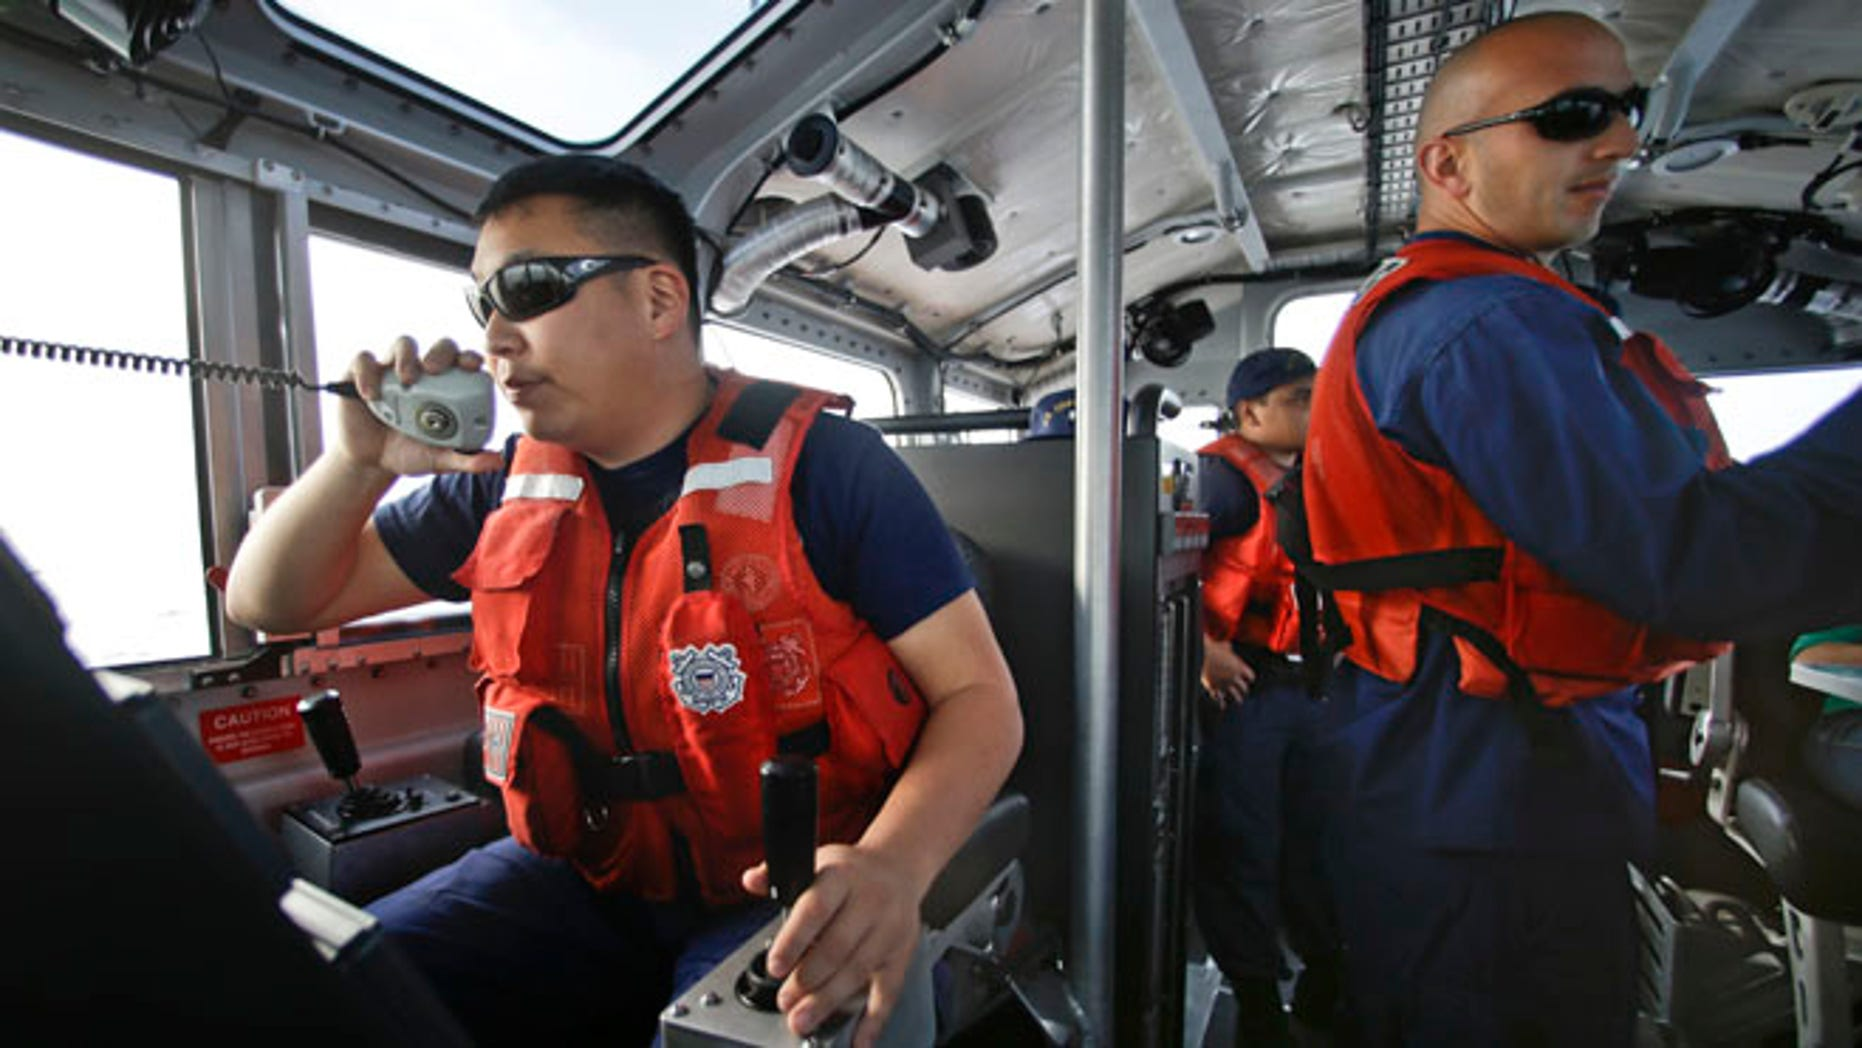 Jan. 28, 2014: Coast Guard officer William Pless communicates on the radio while steering the 45 foot Coast Guard vessel through a dense fog during a patrol off the San Diego coast in San Diego. With the drug war locking down land routes across Latin America and at the U.S. border, smugglers have been increasingly using large vessels to carry multi-ton loads of cocaine and marijuana hundreds of miles offshore, where the lead federal agency with extensive law enforcement powers is the Coast Guard, a military service roughly the size of the New York Police Department.